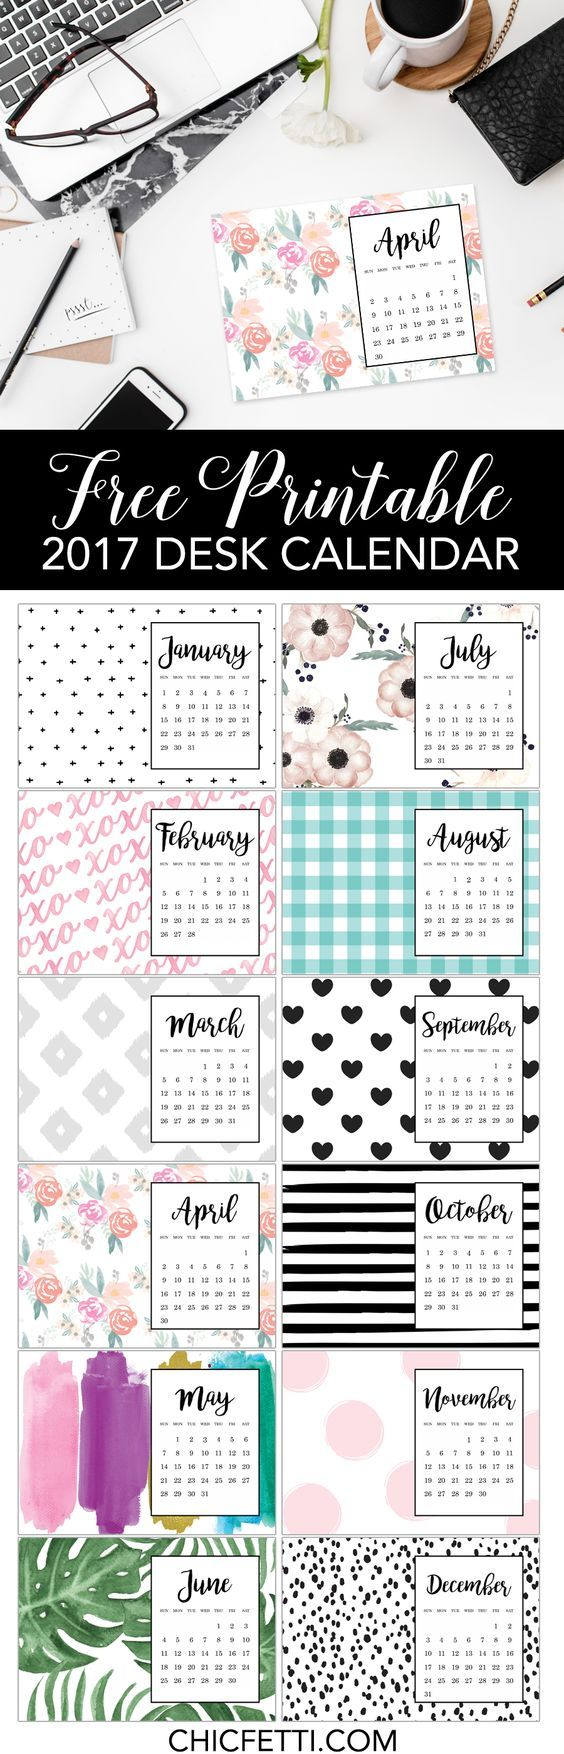 Free Printable Calendar   Chicfetti Blog  Free Printable